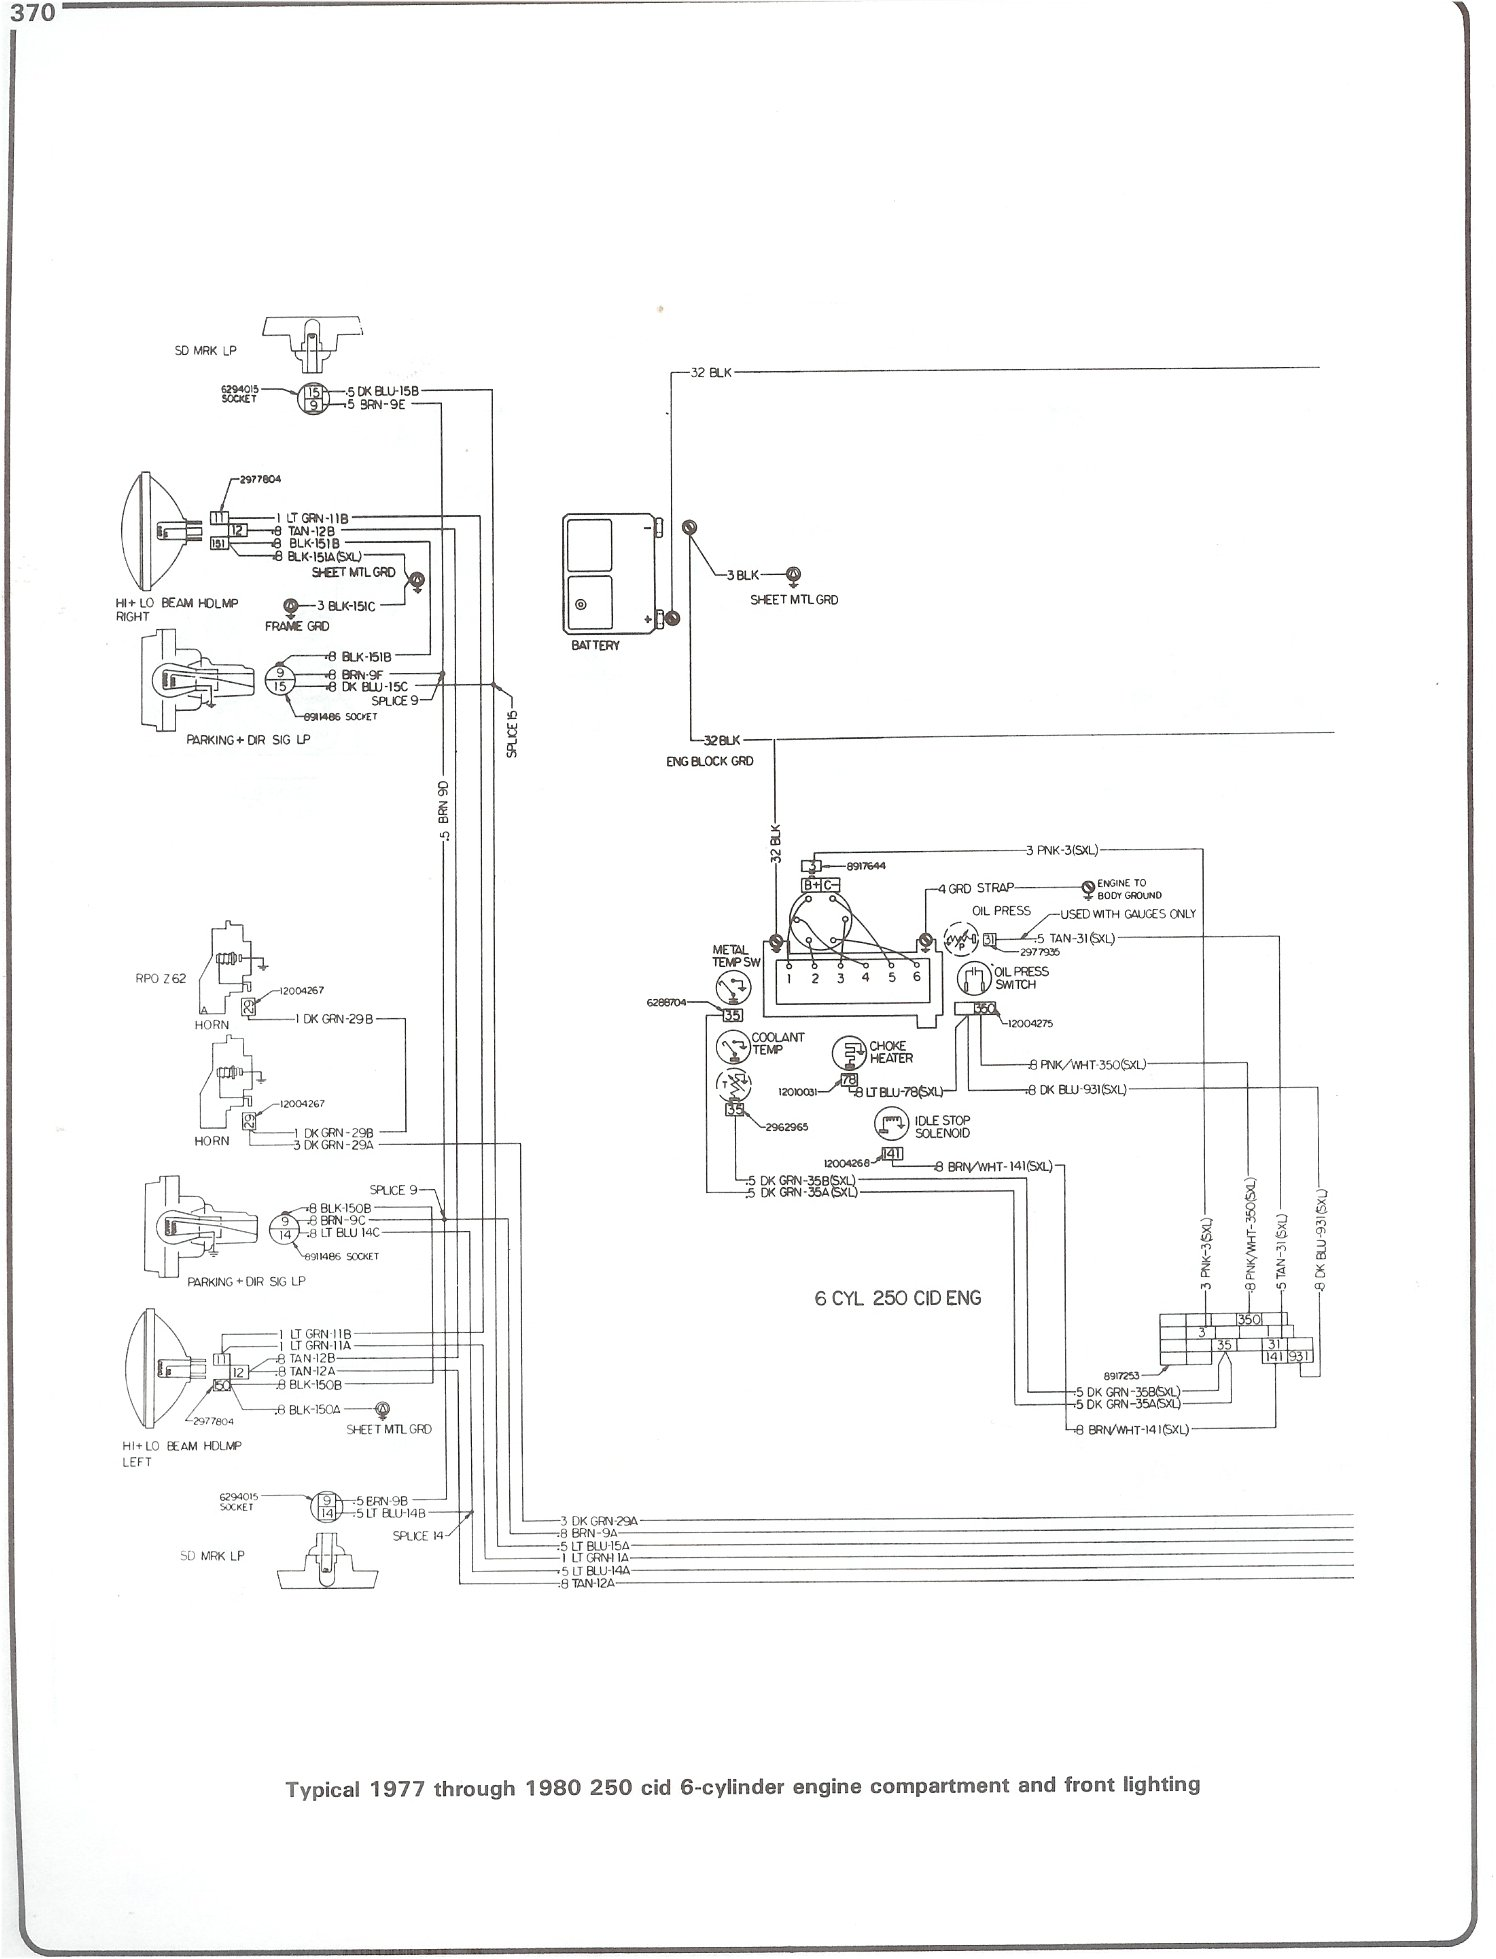 complete 73 87 wiring diagrams rh forum 73 87chevytrucks com 1995 F150 Wiring Diagram 2004 F150 Wiring Diagram